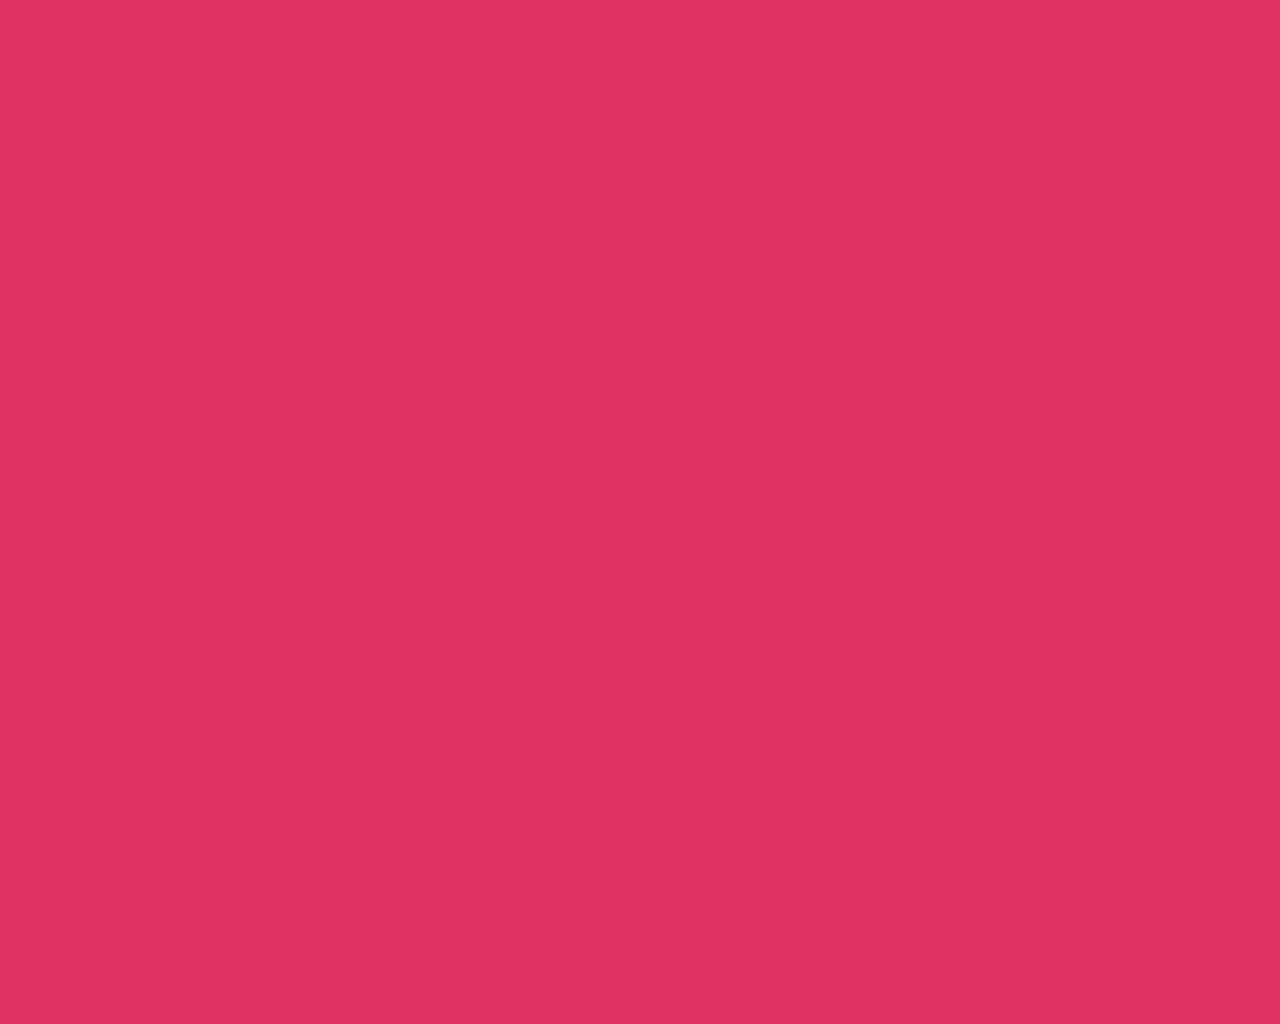 1280x1024 Cerise Solid Color Background